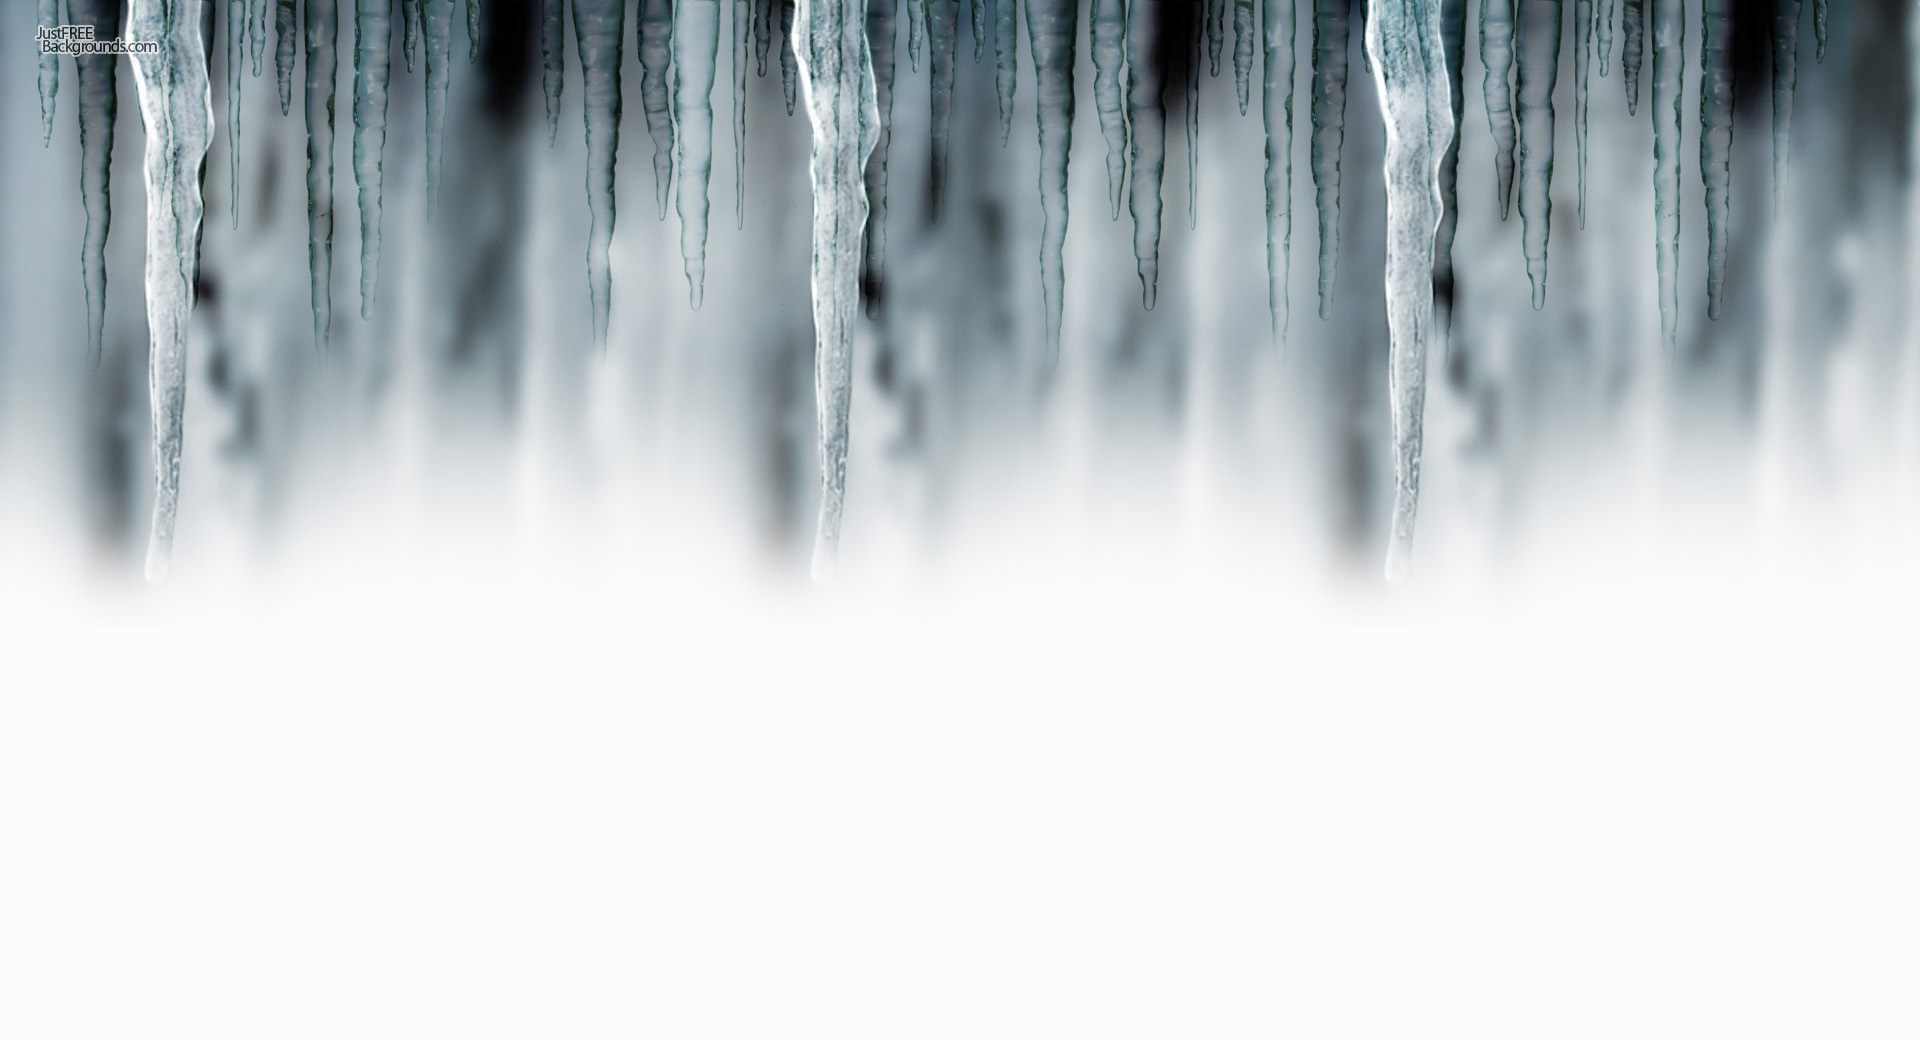 Icicle Png Artistic Icicle Free 233375Icicles Border Png - Icicle Border, Transparent background PNG HD thumbnail